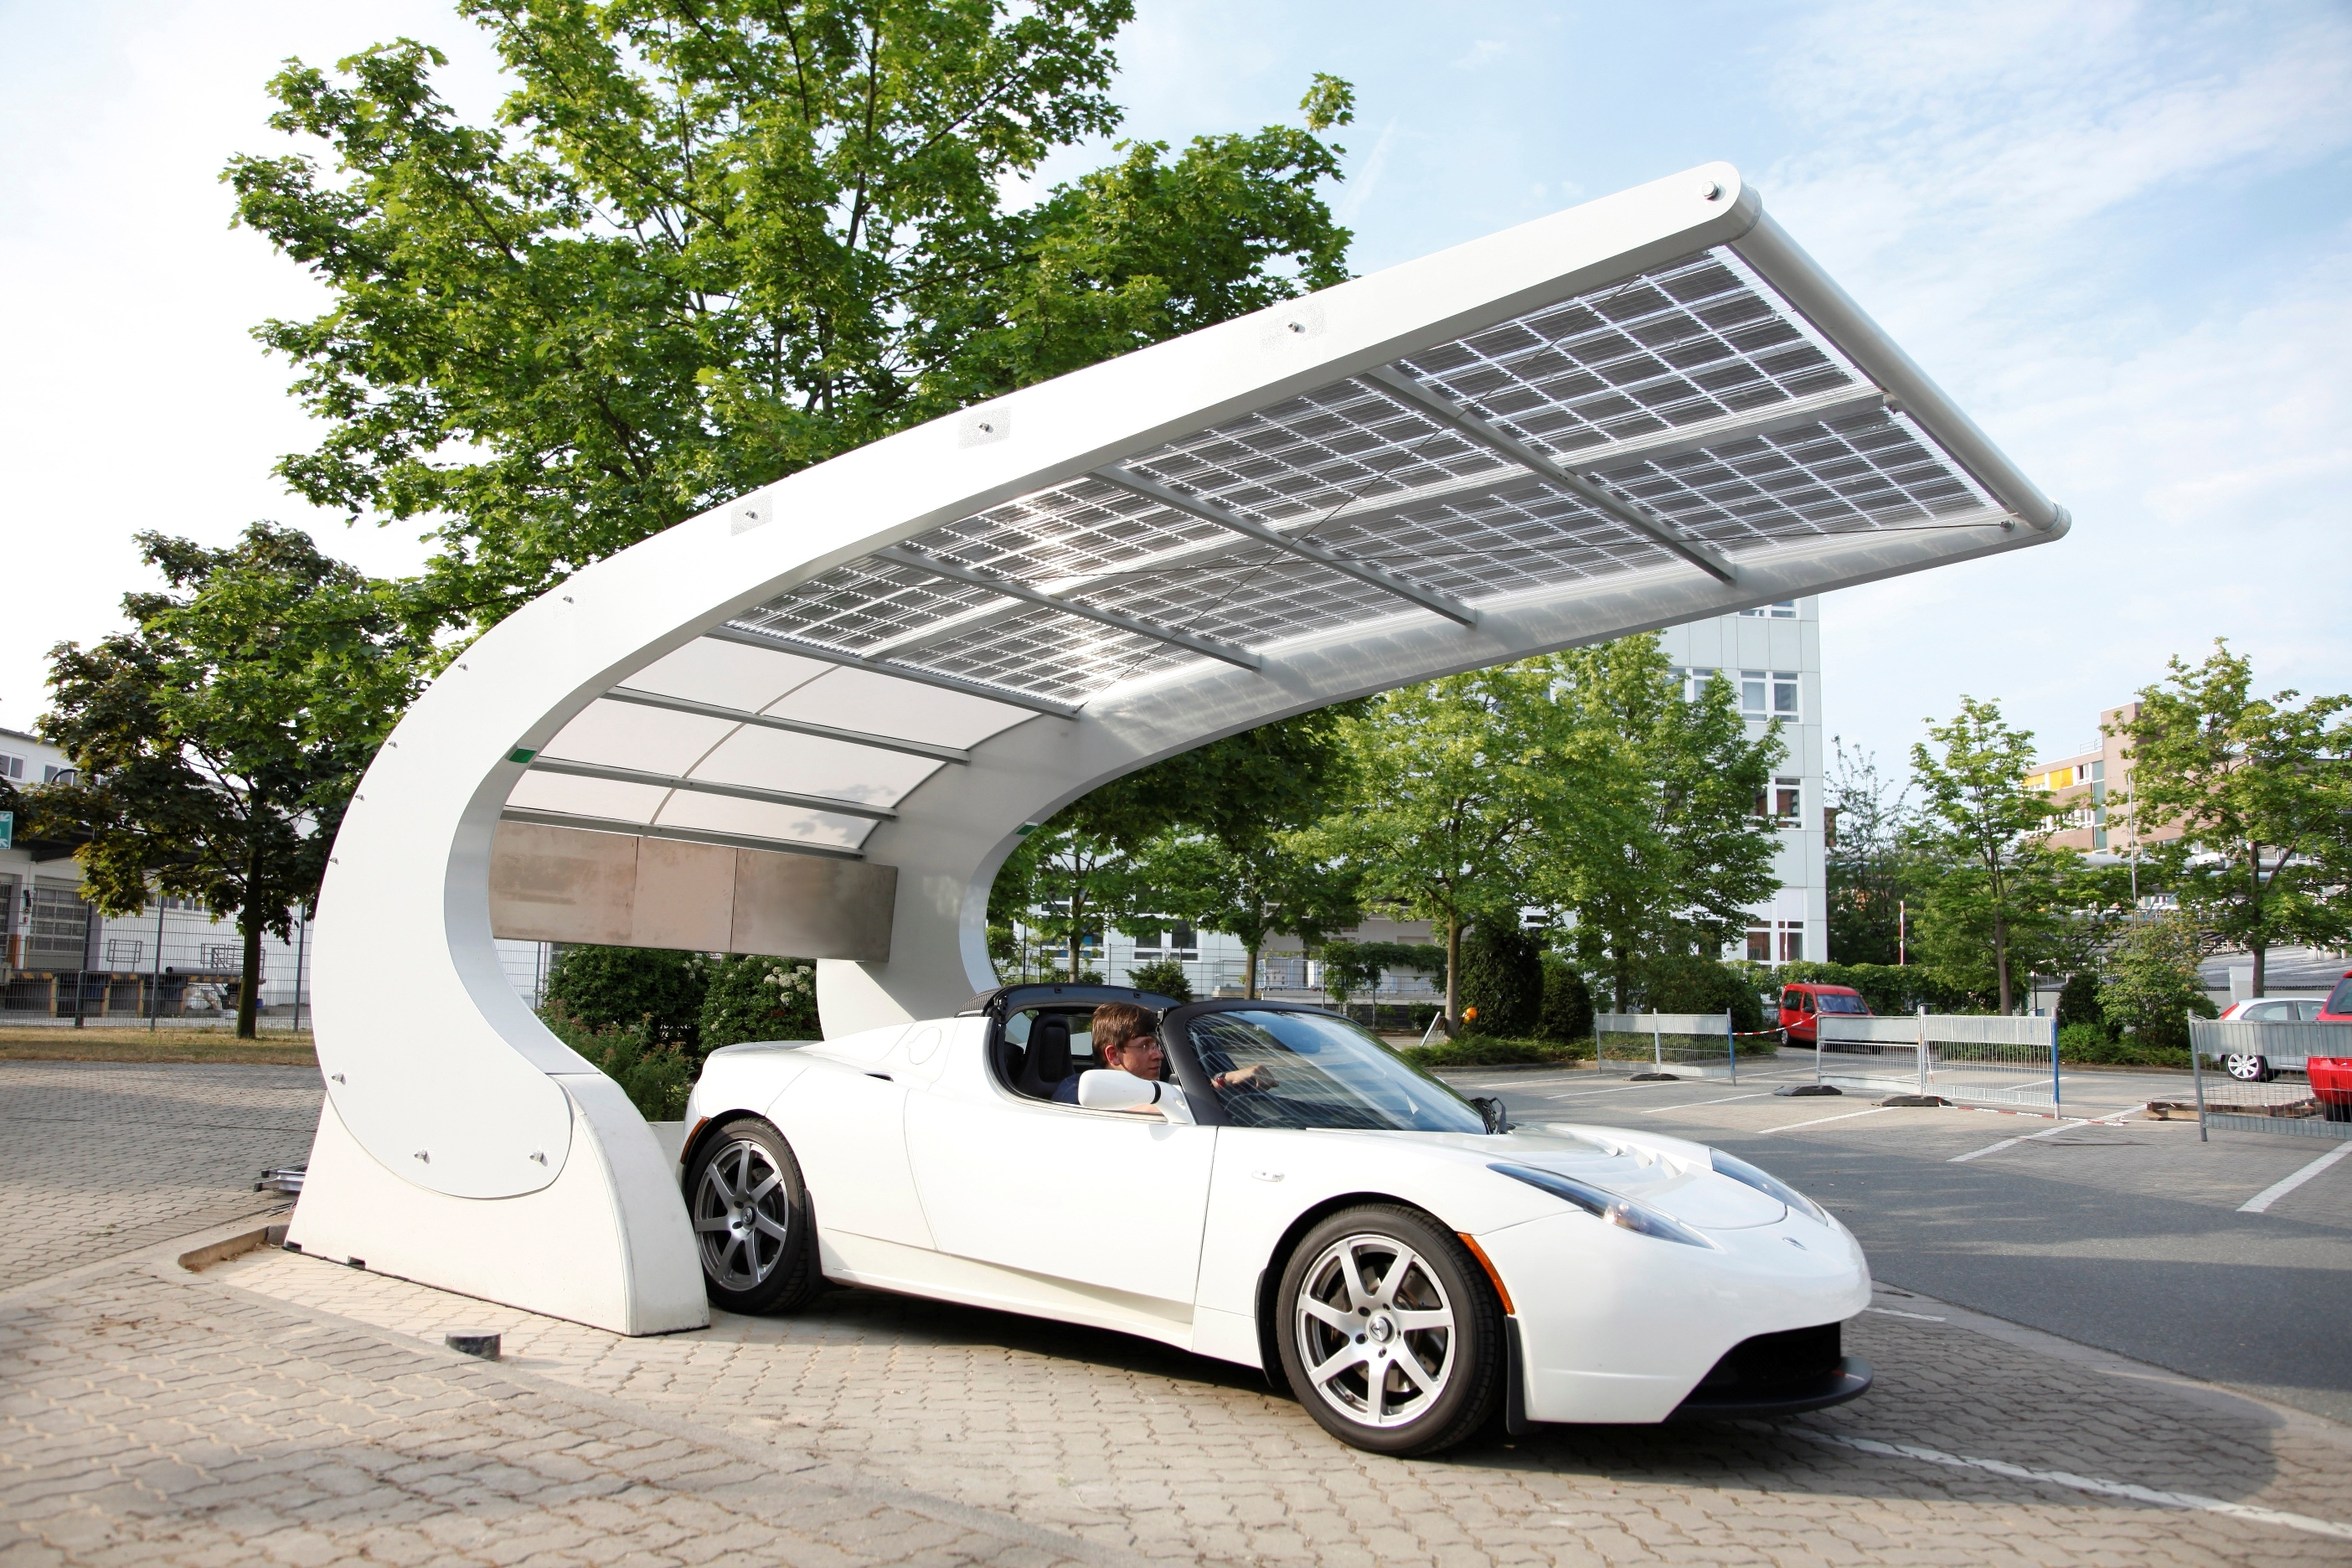 Renewable Energy Parking